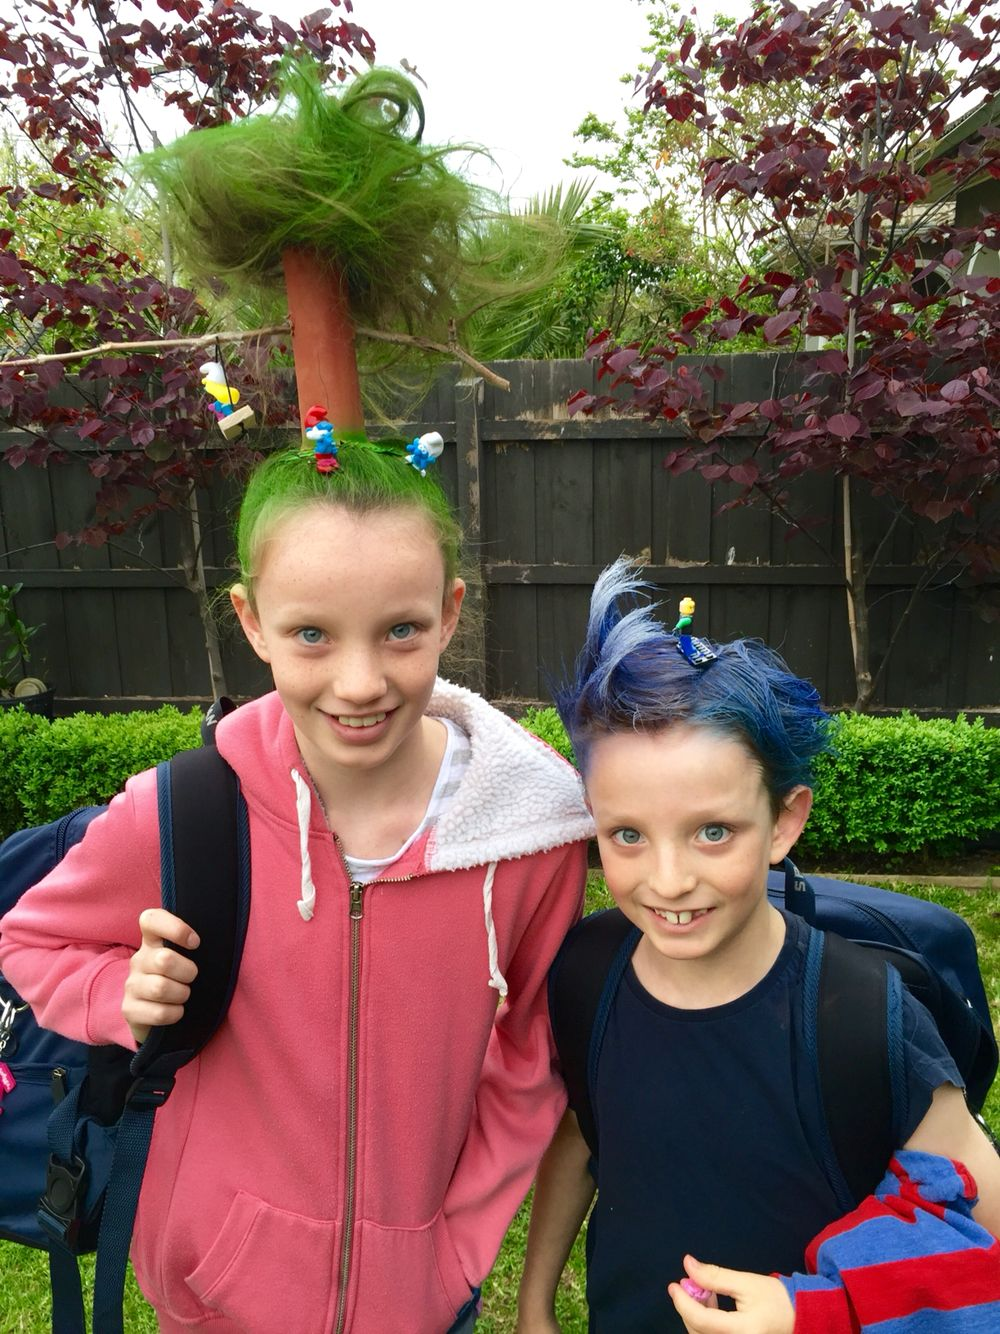 smurf tree and surfer wacky hair day | hair - crazy hair day